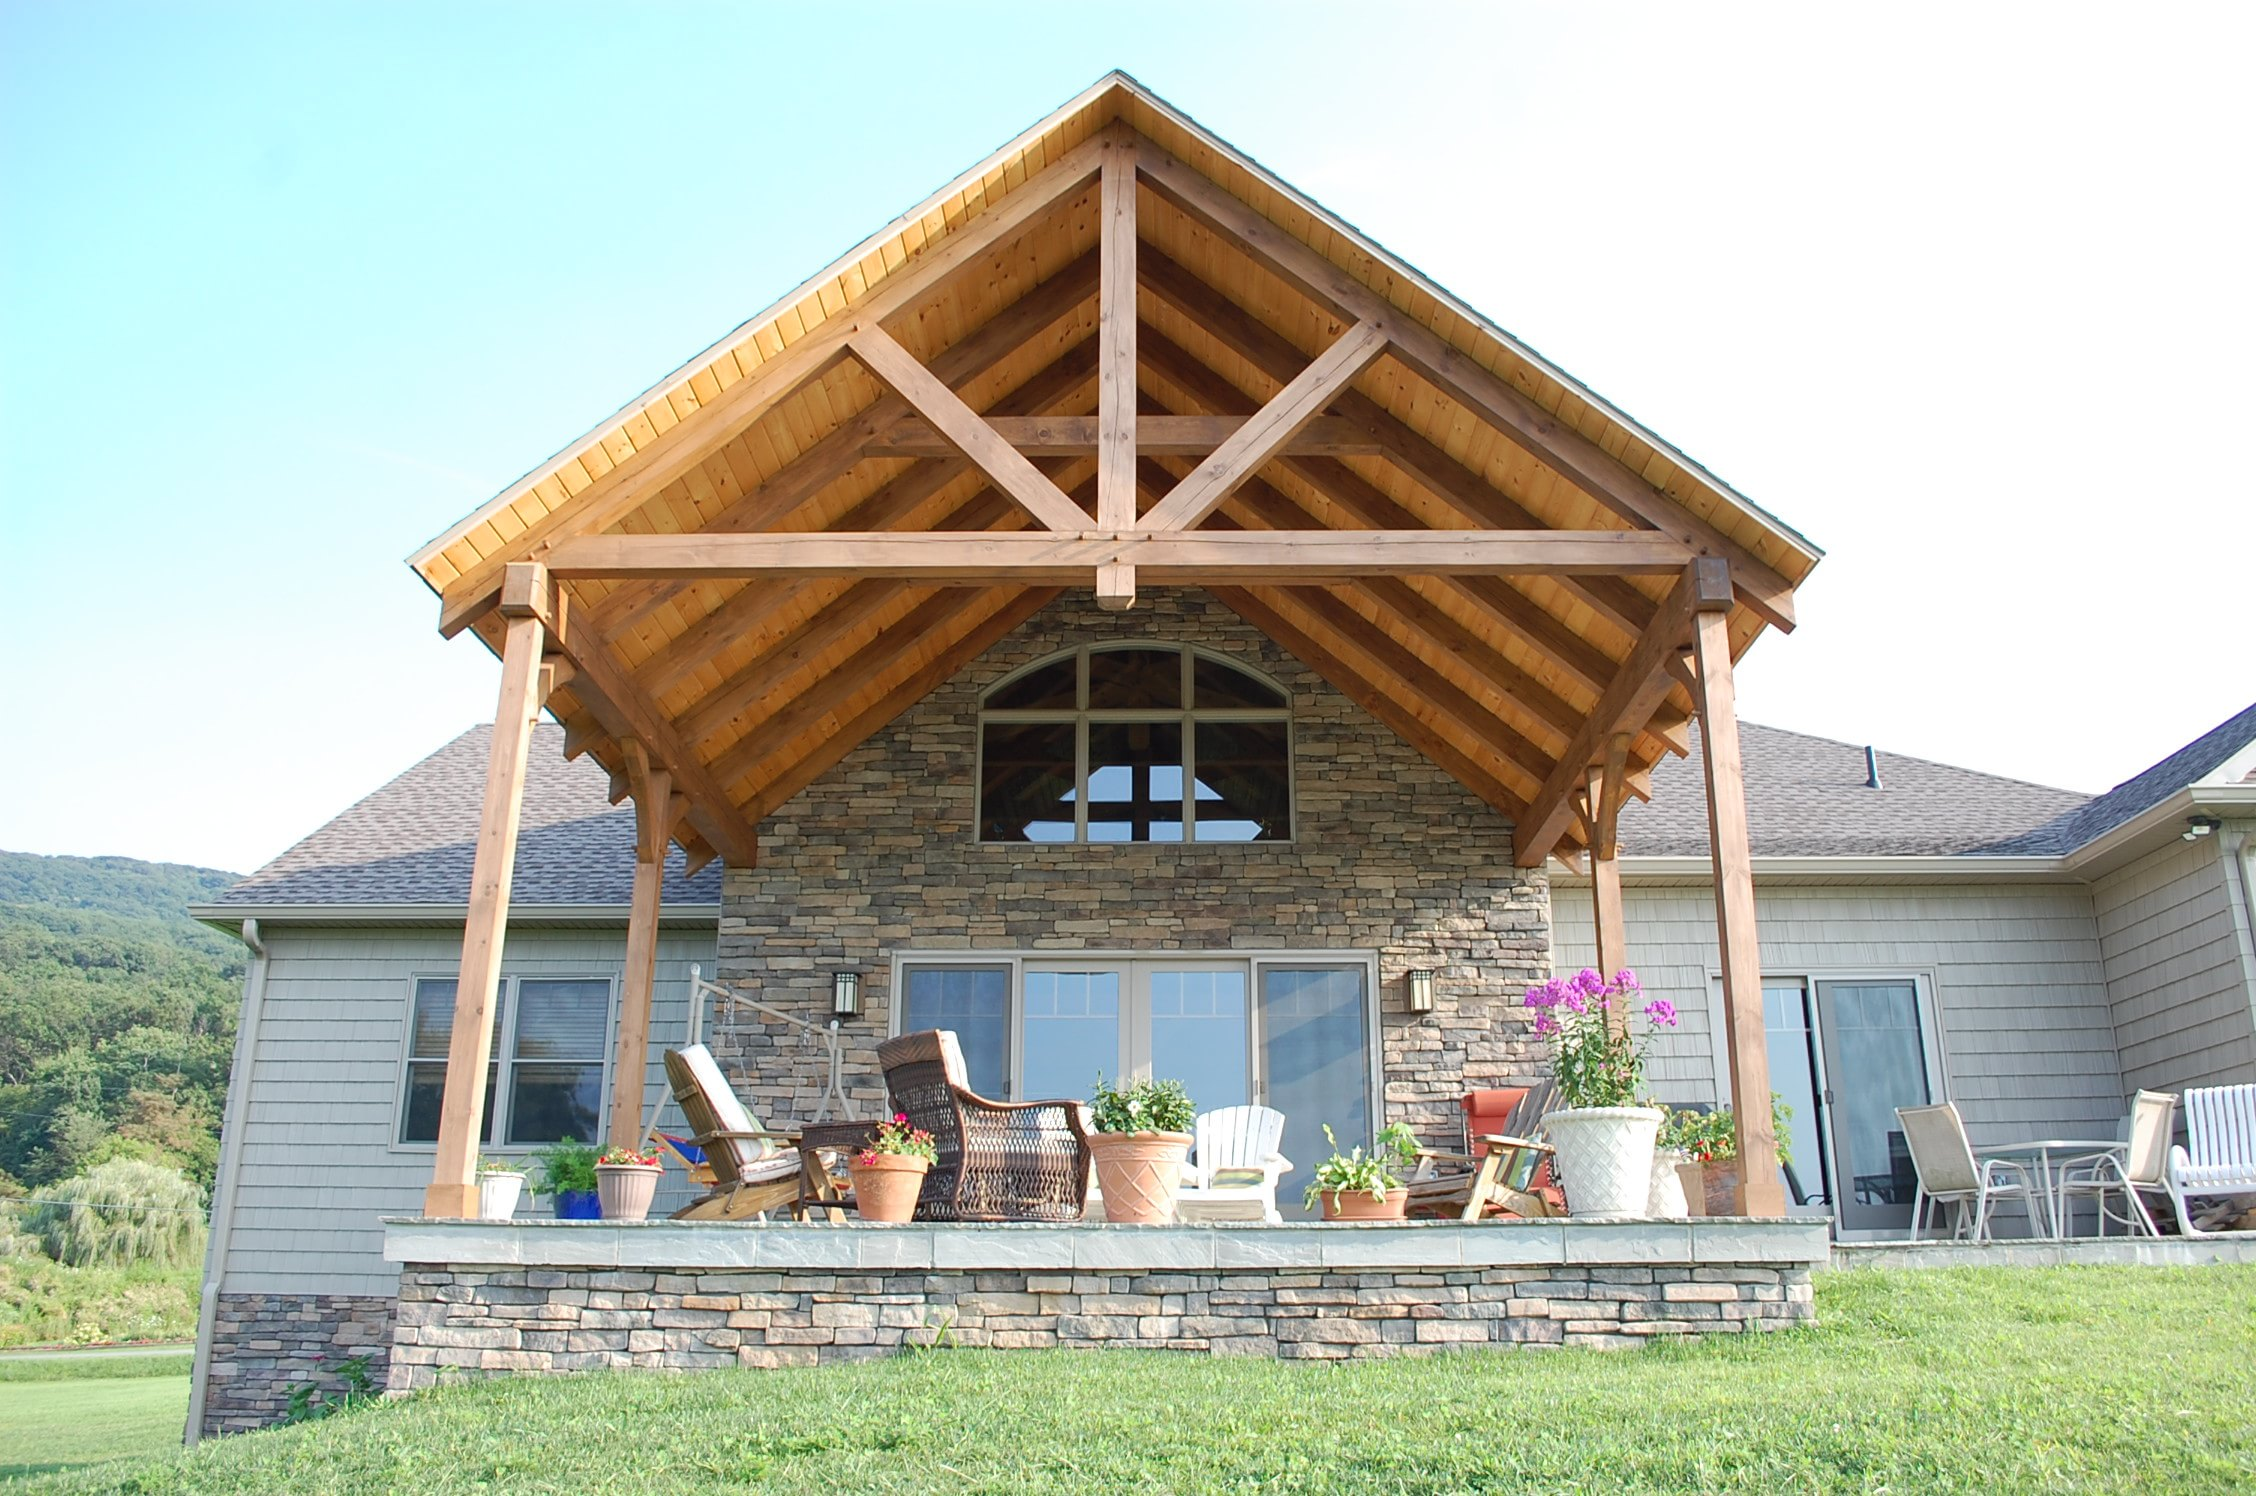 https mttaborbuilders com construction galleries mt tabor builders clear spring md mt tabor quality